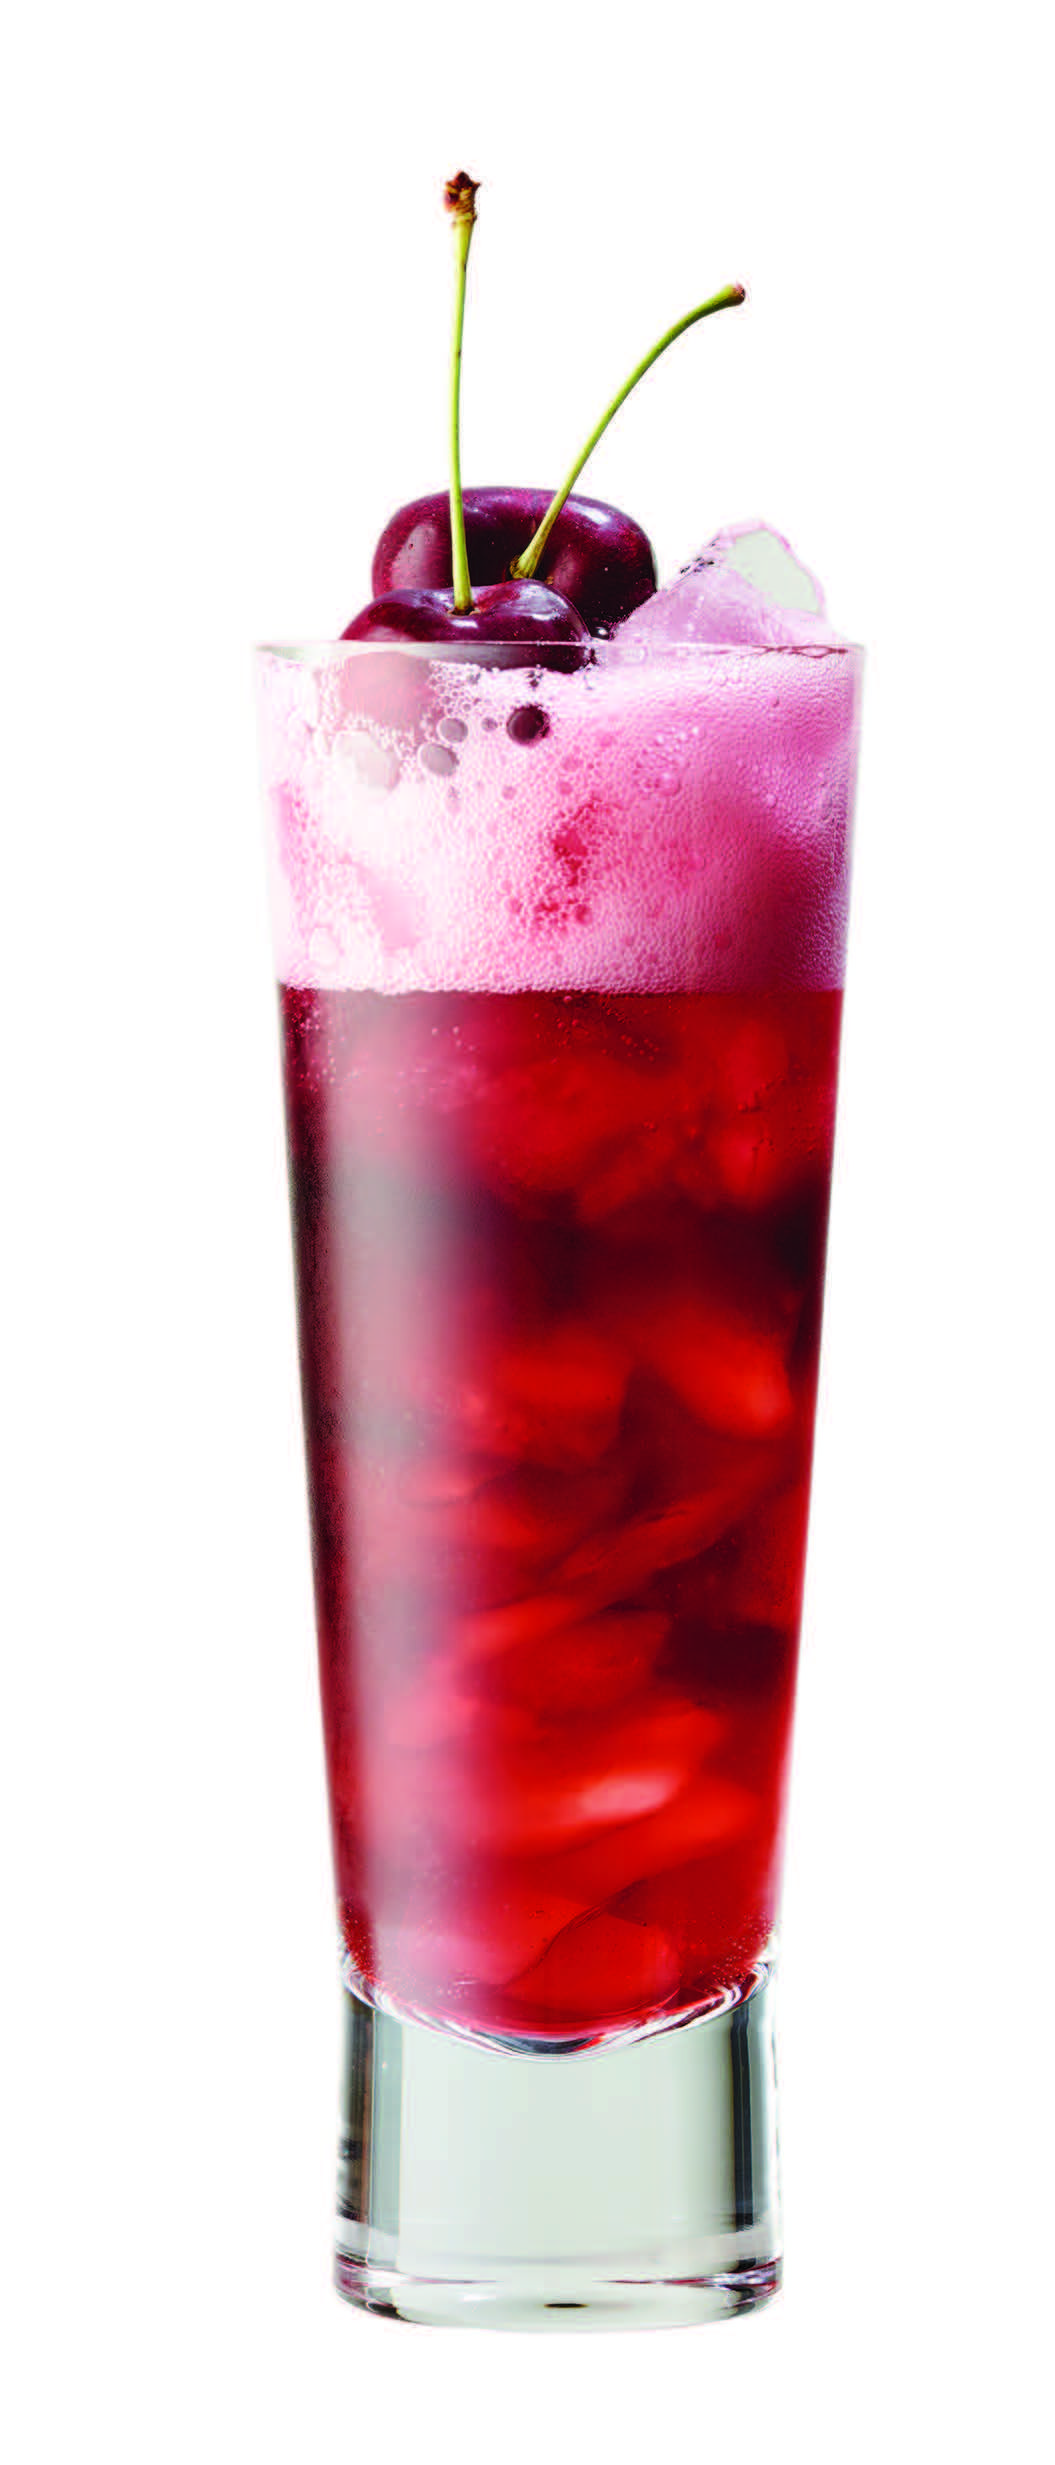 Black Red Sipper Barefoot Wine Bubbly Happy Hour Drink Recipes Red Drinks Entertaining Recipes